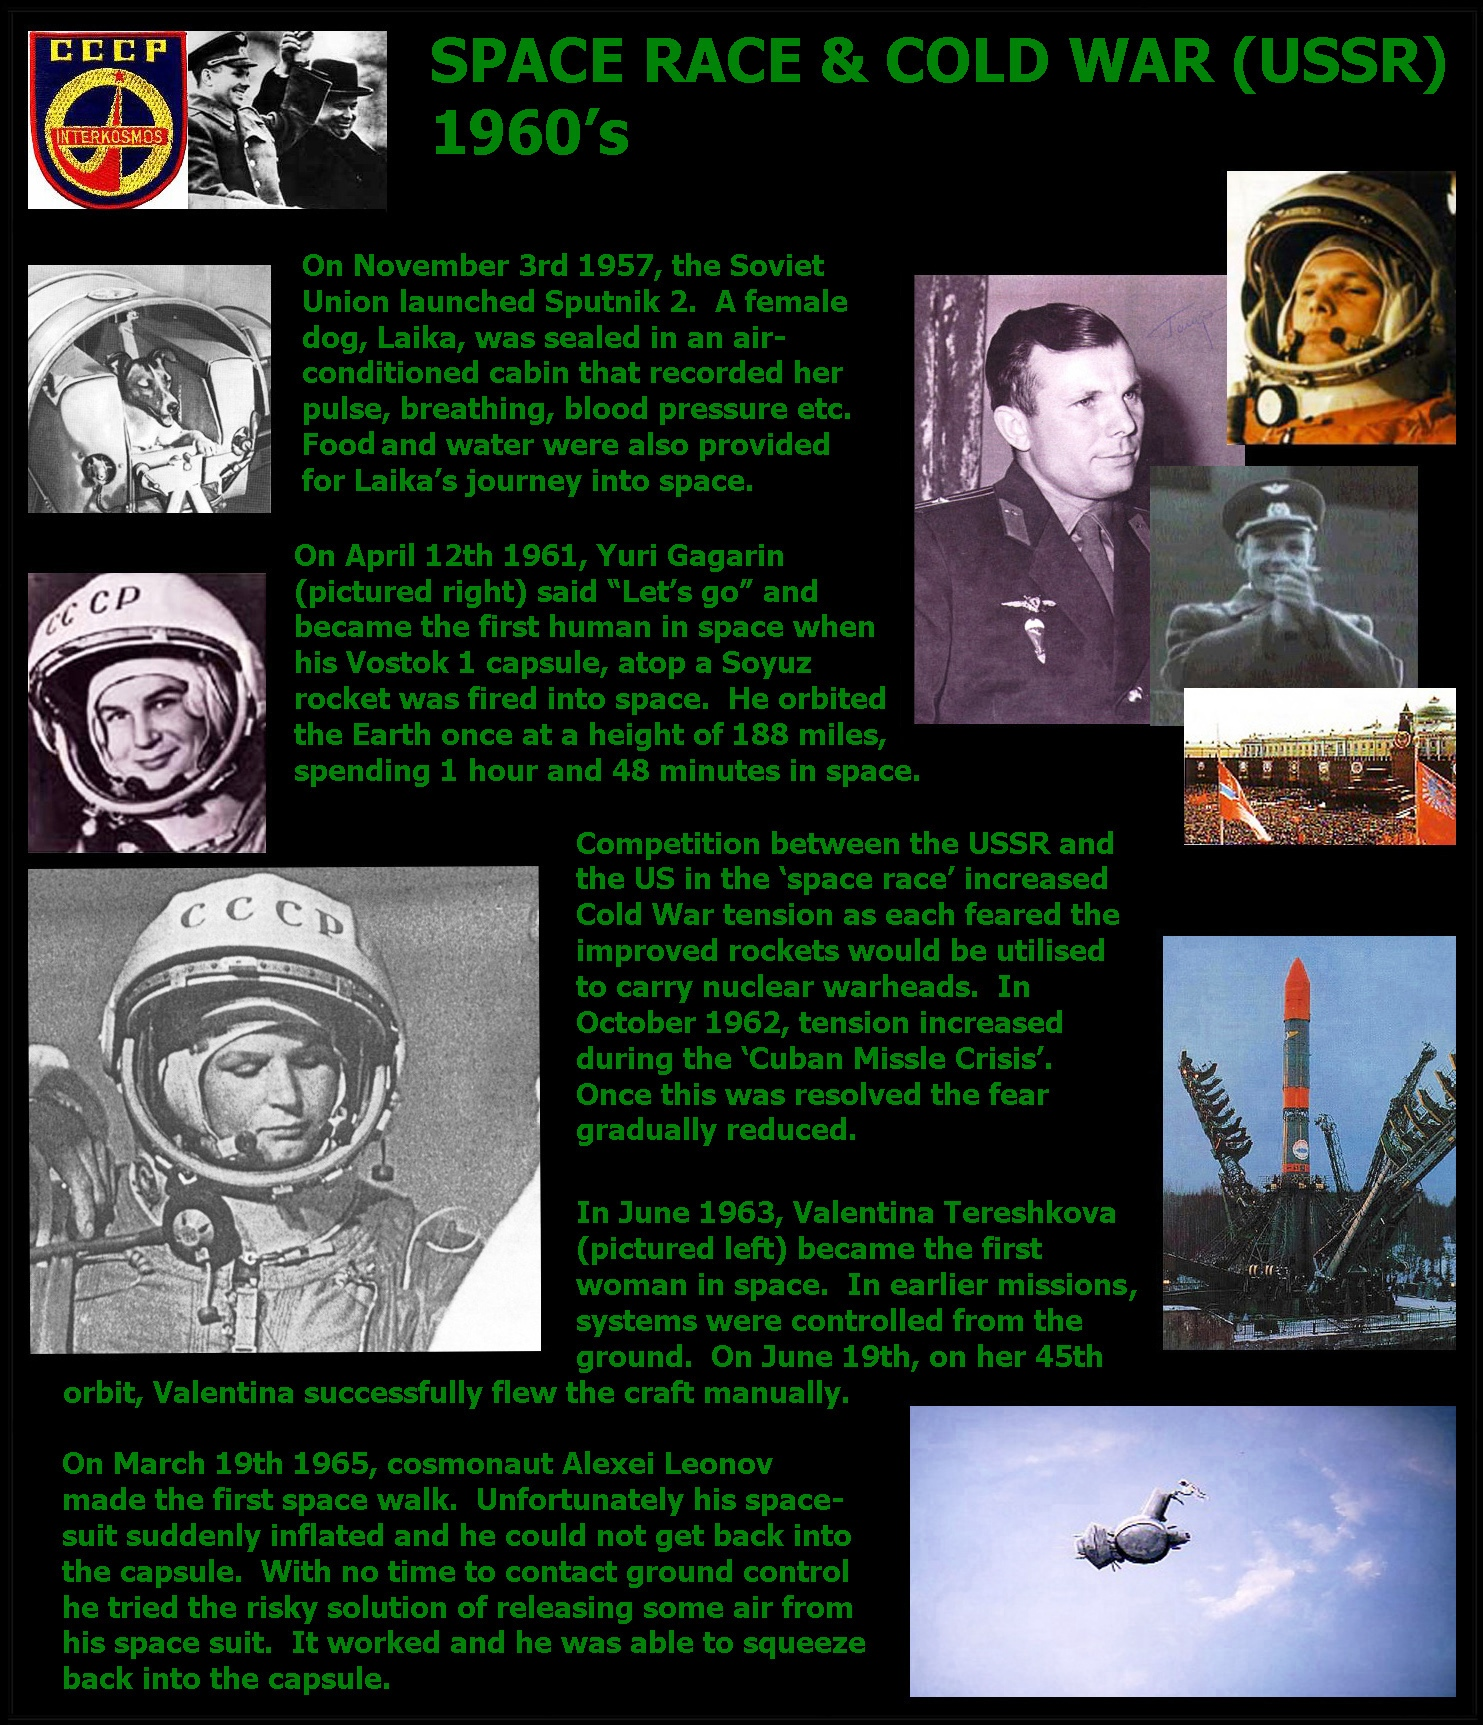 space race cold war essay Primary resources: the cold war general resources, cuban missile crisis, arms & space race, vietnam war, korean war, and berlin wall the cold war files this 1945) a seminal essay by an architect of the cold war science complex, bush proposes a computerized information management.